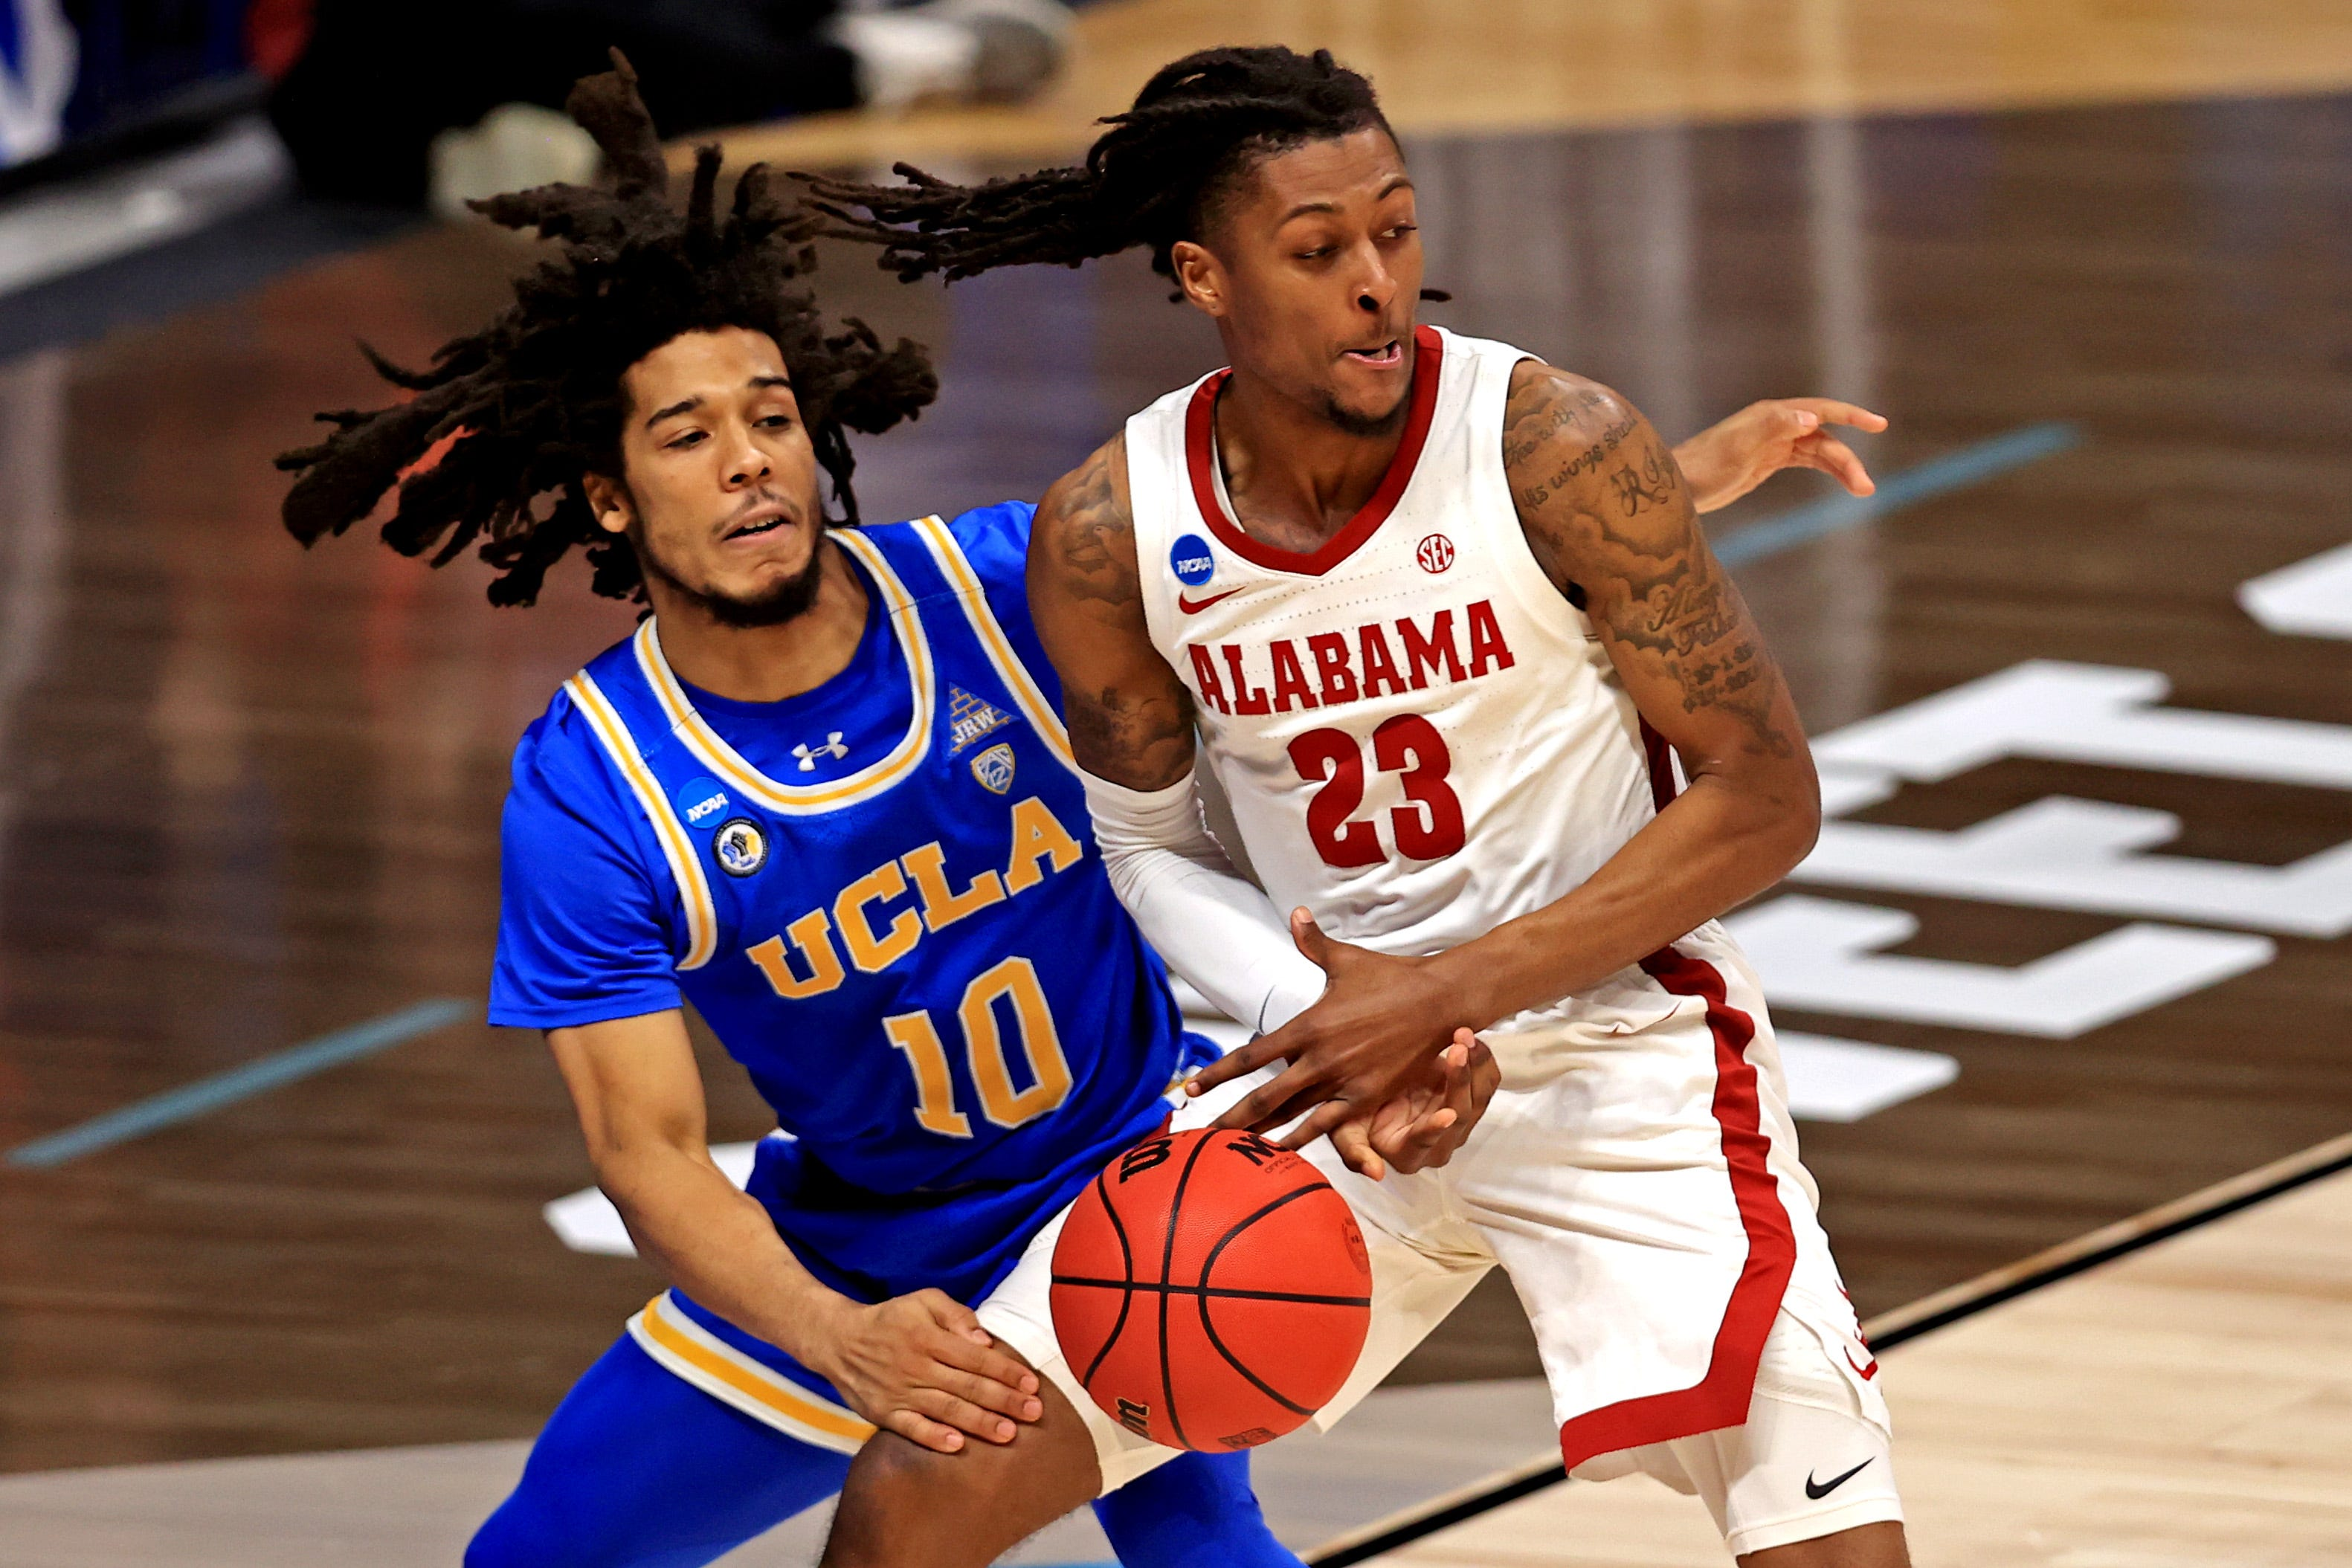 No. 11 UCLA continues improbable NCAA Tournament run with overtime win vs. No. 2 Alabama in Sweet 16